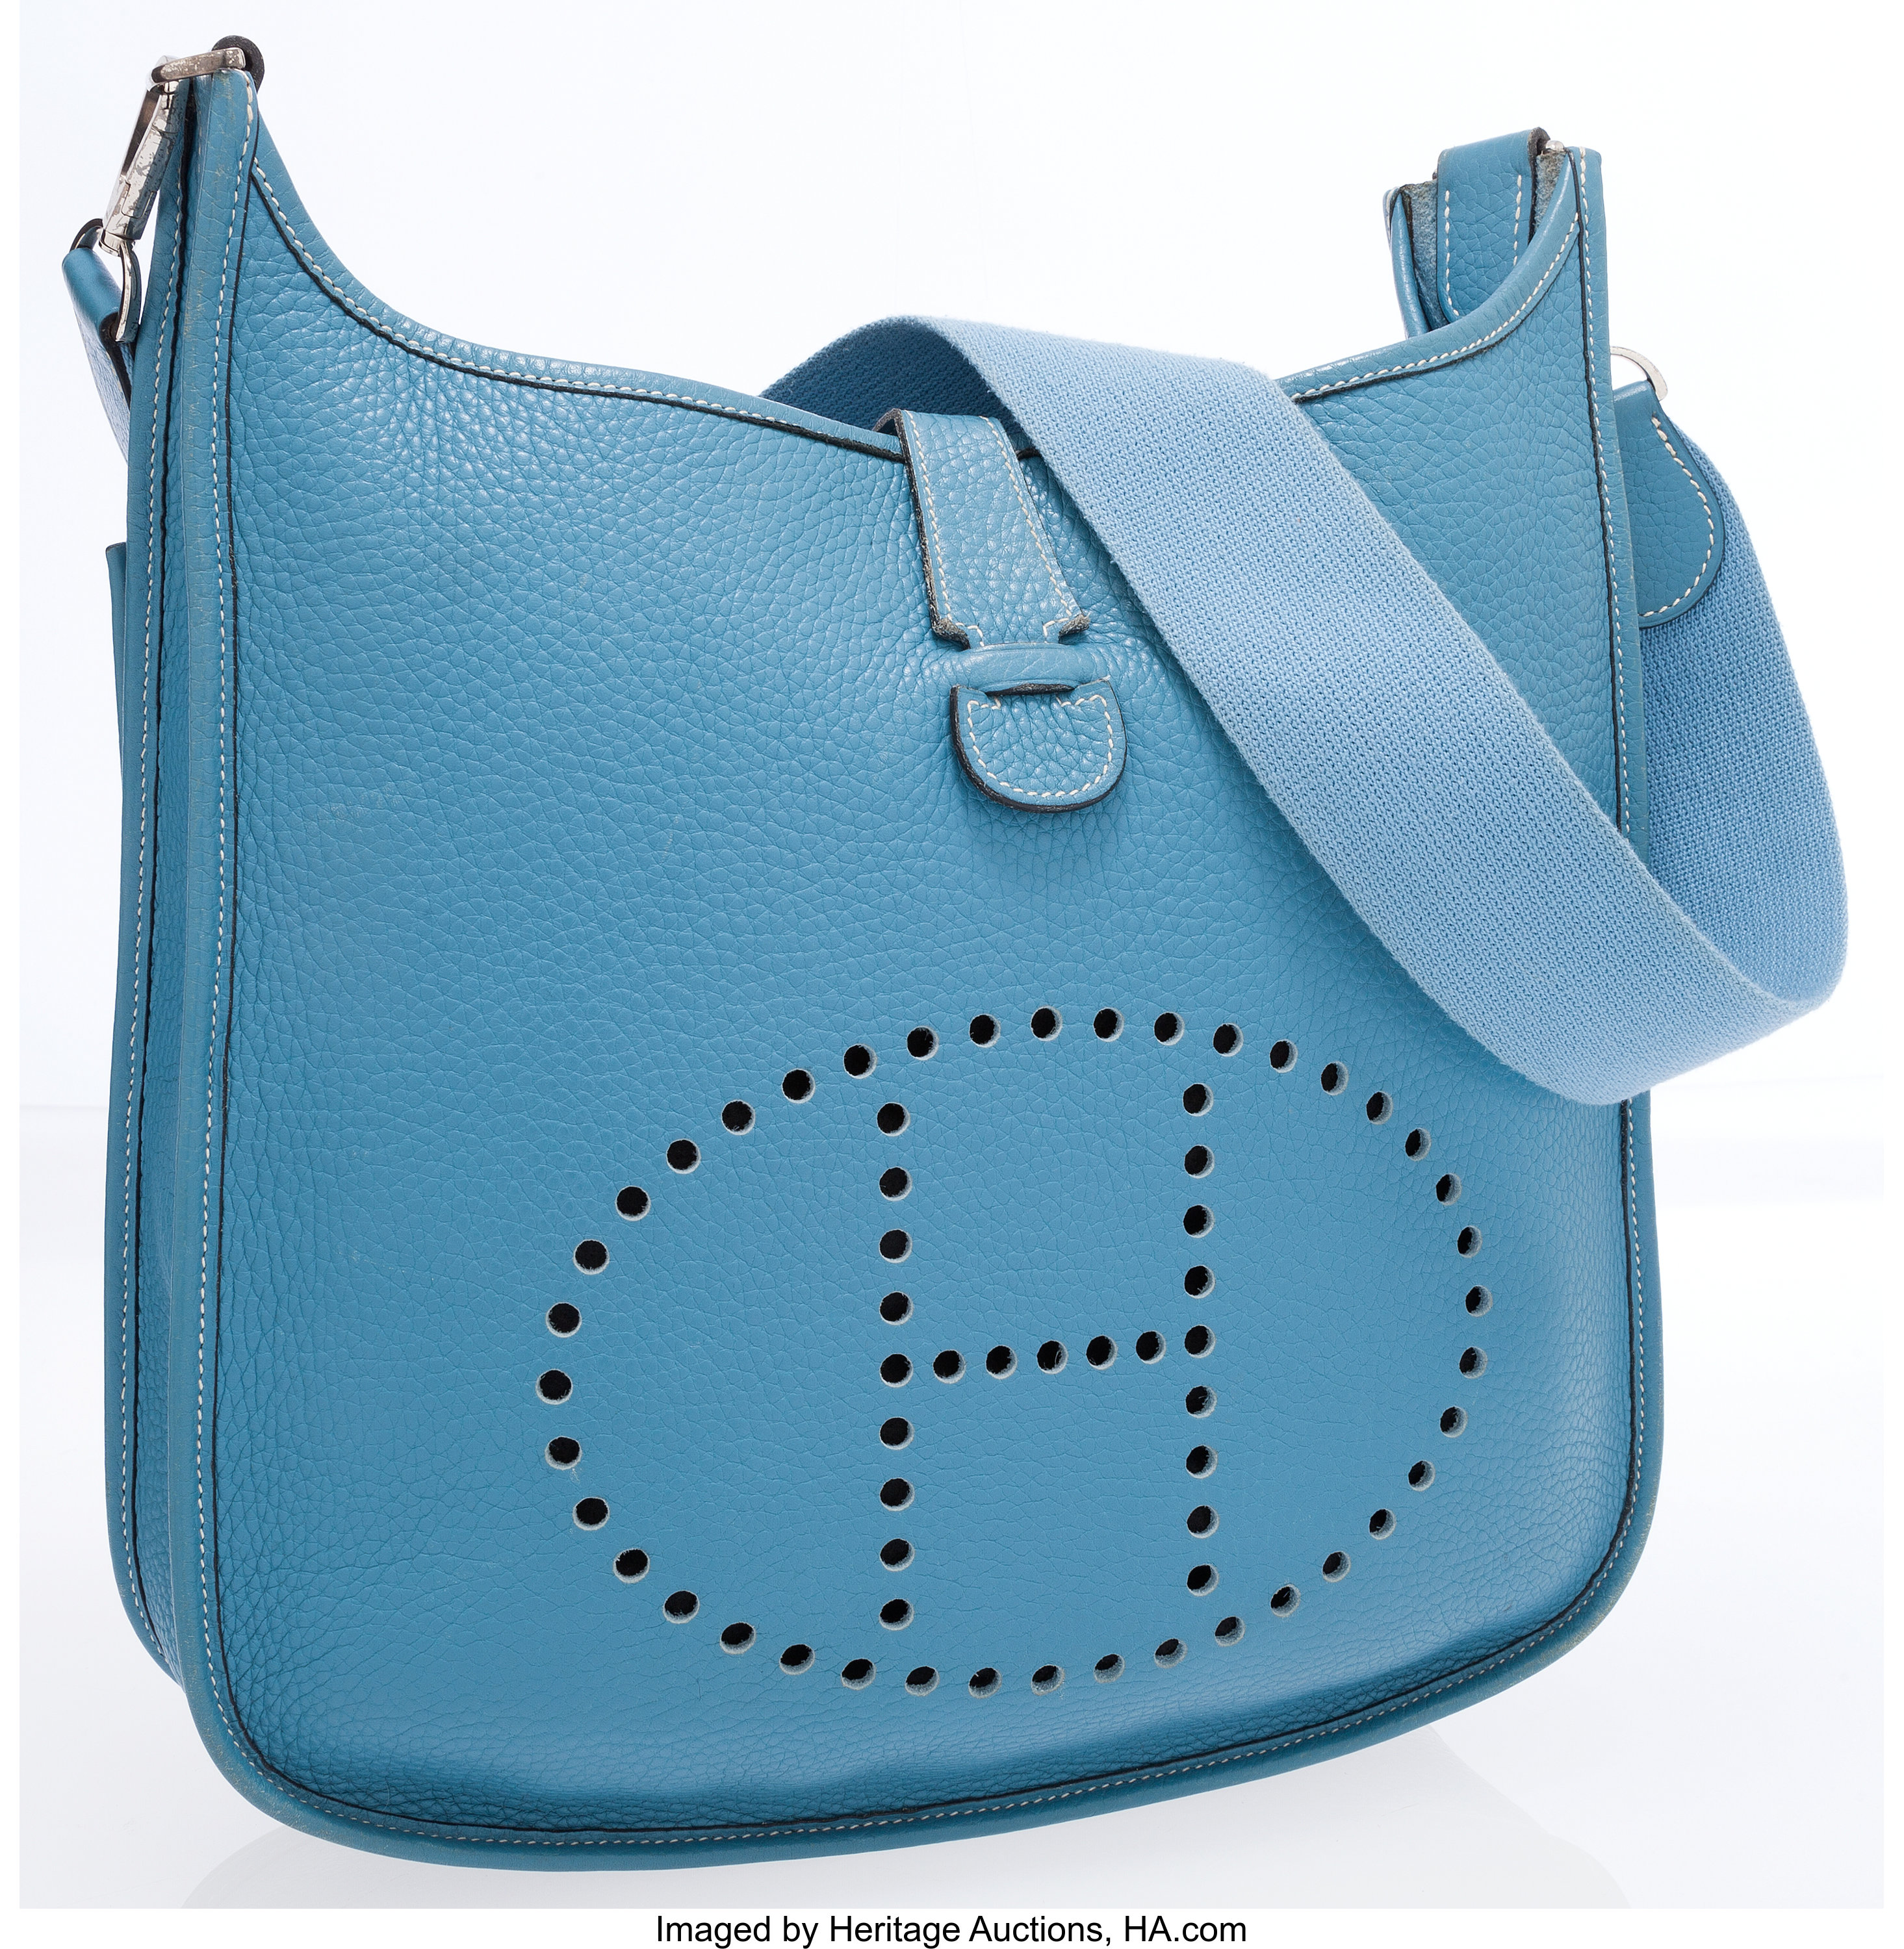 78caf6d31 Hermes Blue Jean Clemence Leather Evelyne II Crossbody Bag. ... | Lot  #76012 | Heritage Auctions